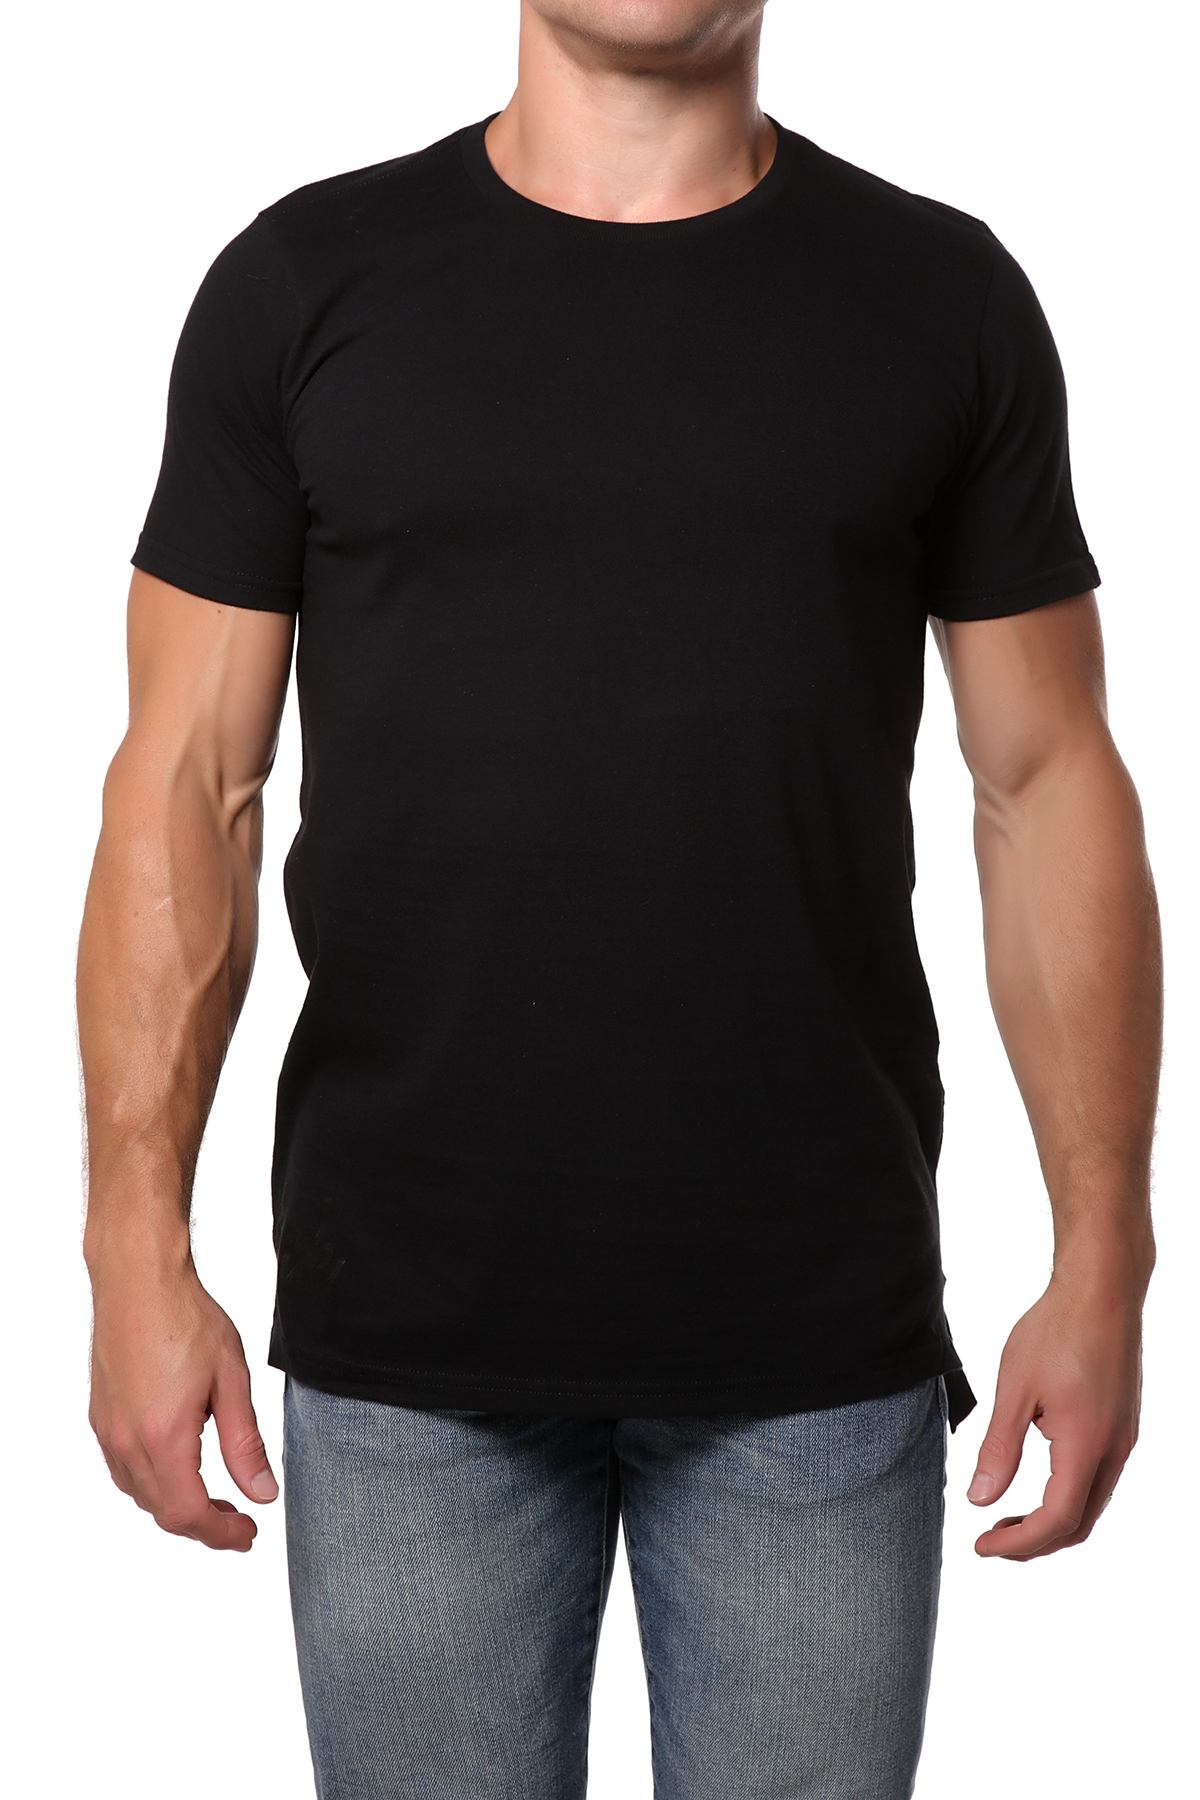 Lick Black Long Cotton Graphic Tee